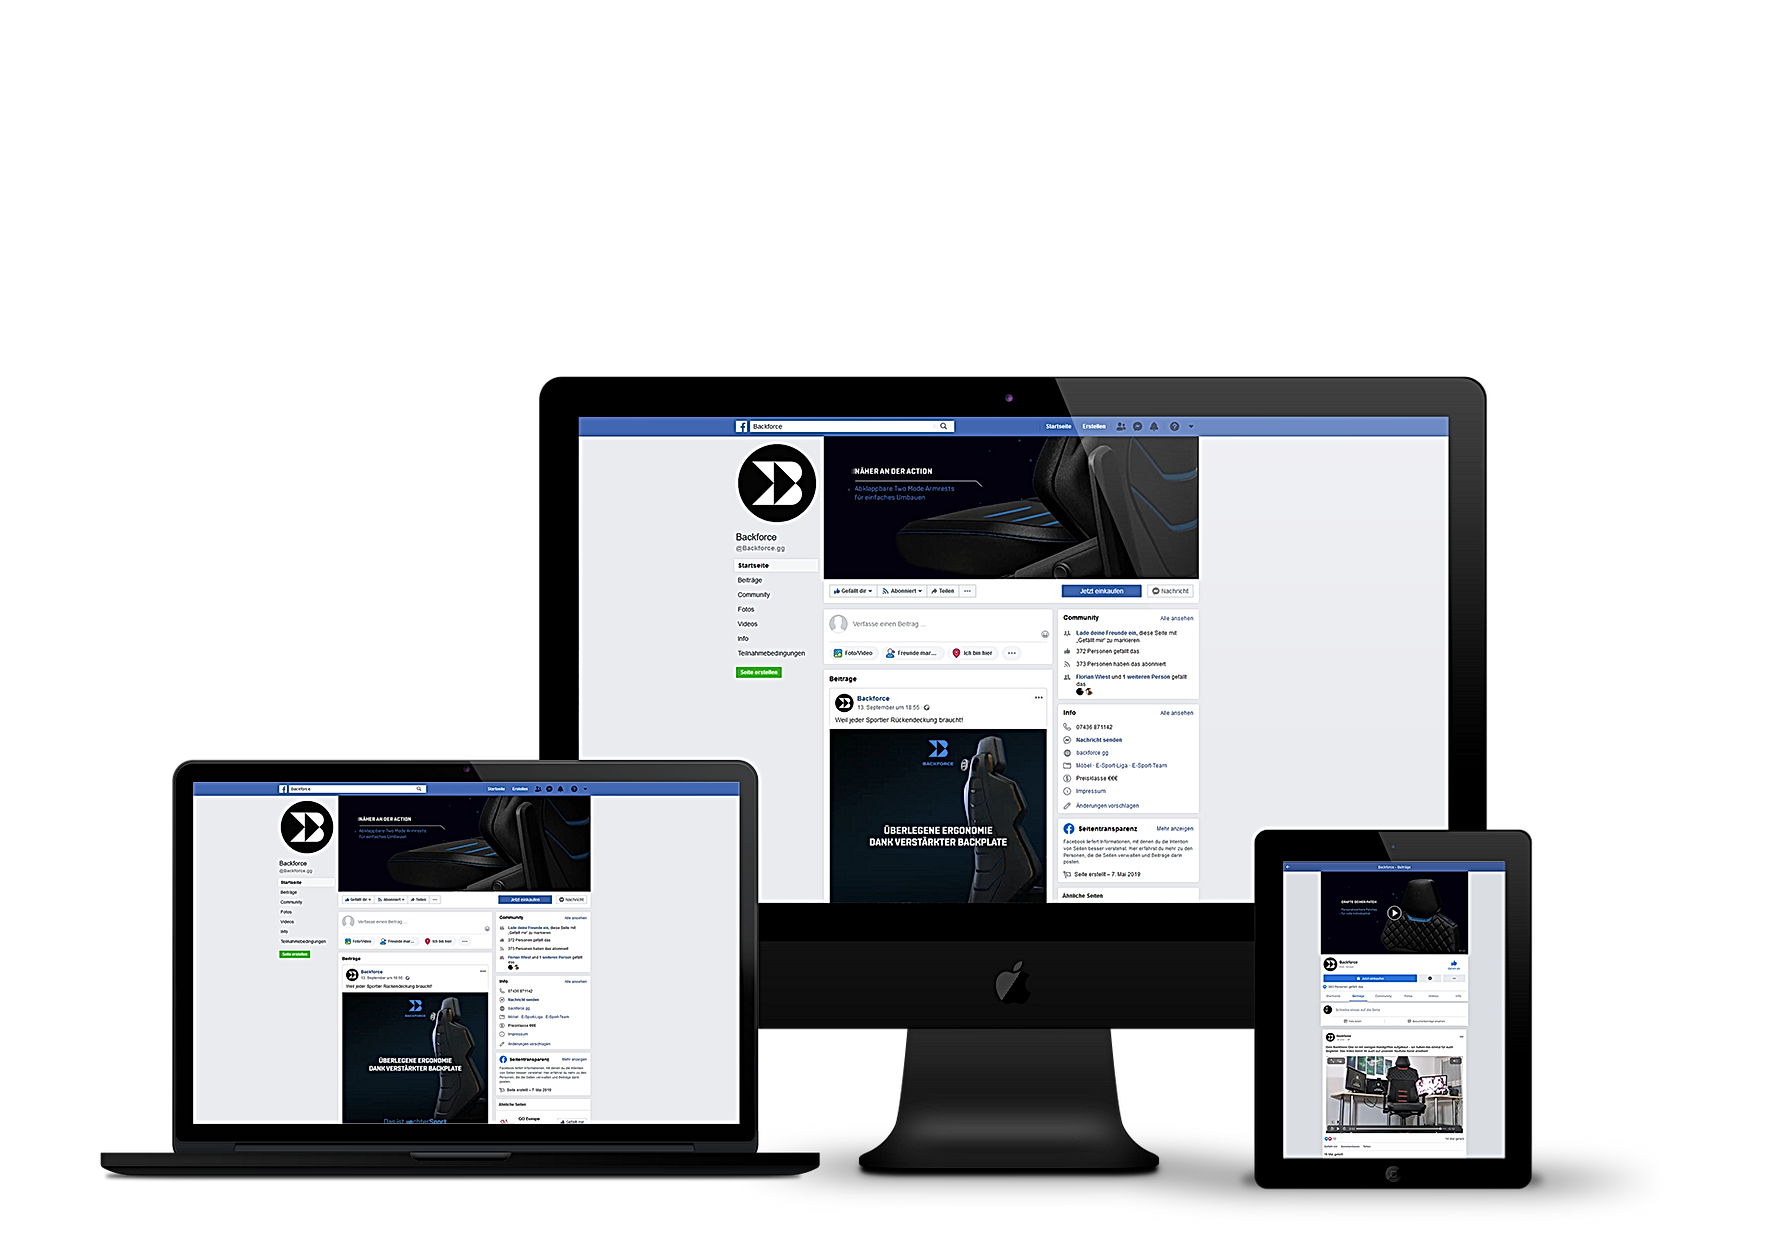 001_20-09-2019_MOCKUP_Backforce_Facebook